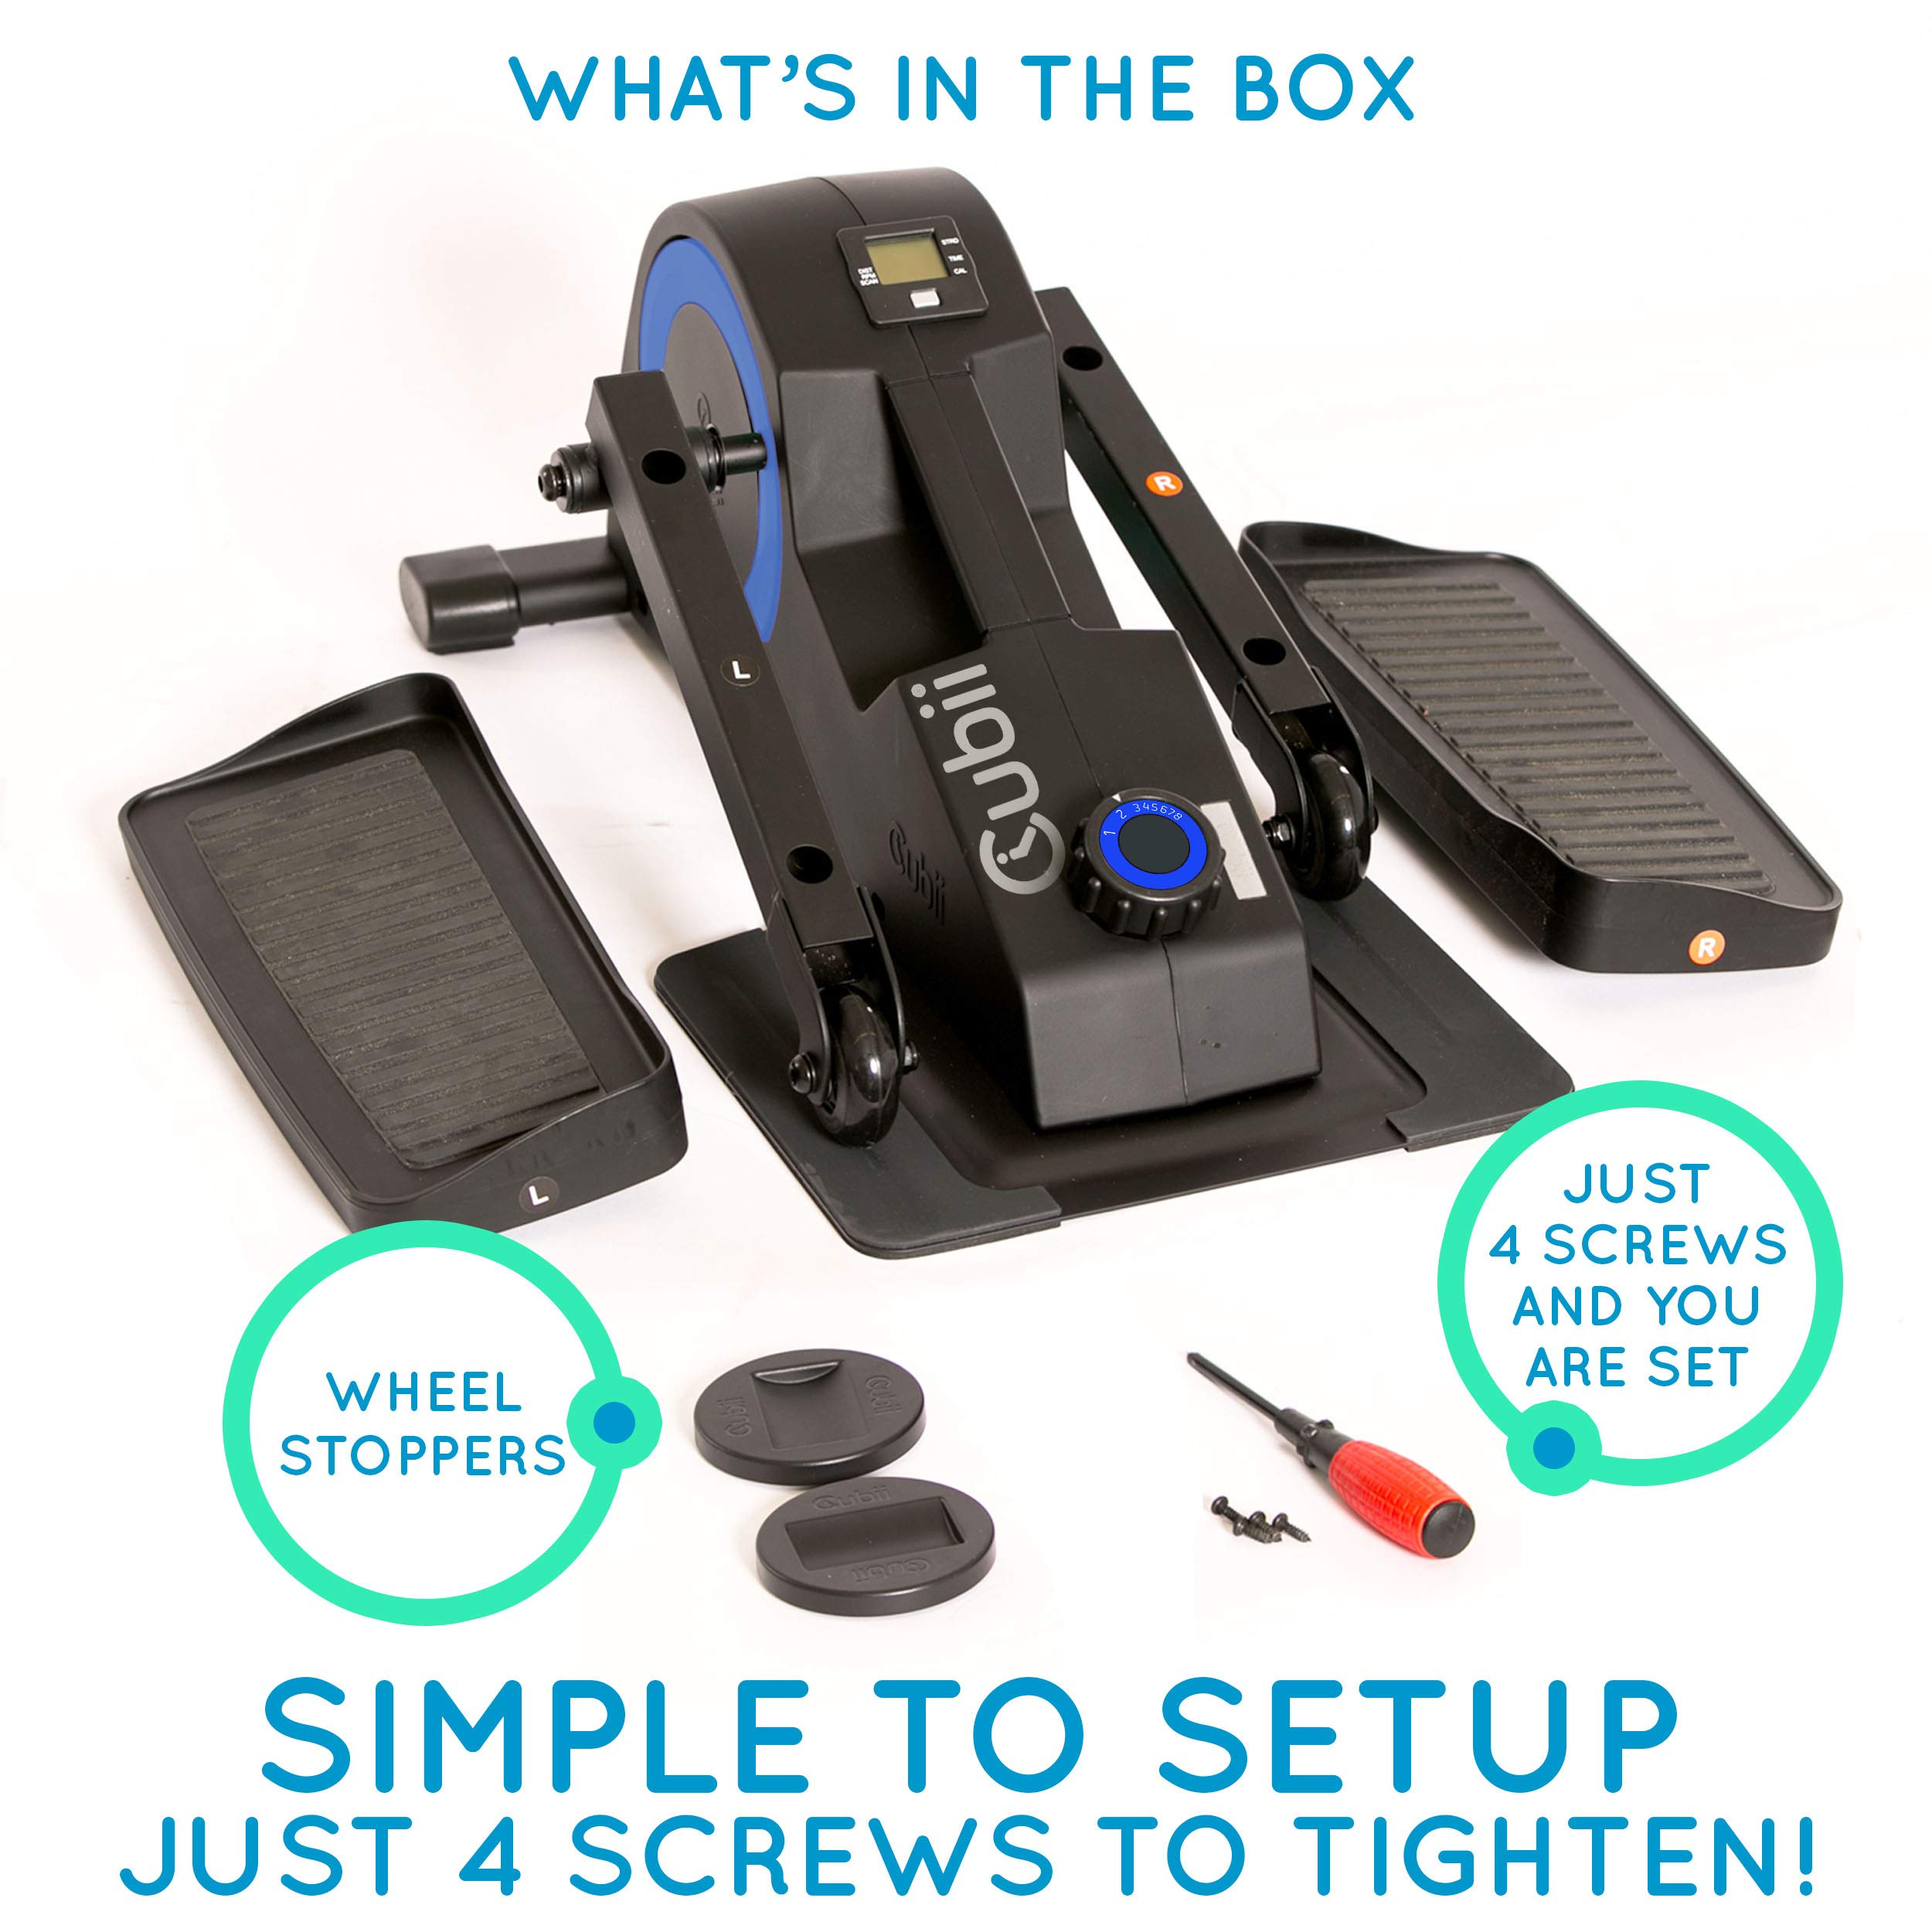 Cubii Jr: Desk Elliptical with Built in Display Monitor, Easy Assembly, Quiet & Compact, Adjustable Resistance (Royal Blue) by Cubii (Image #10)